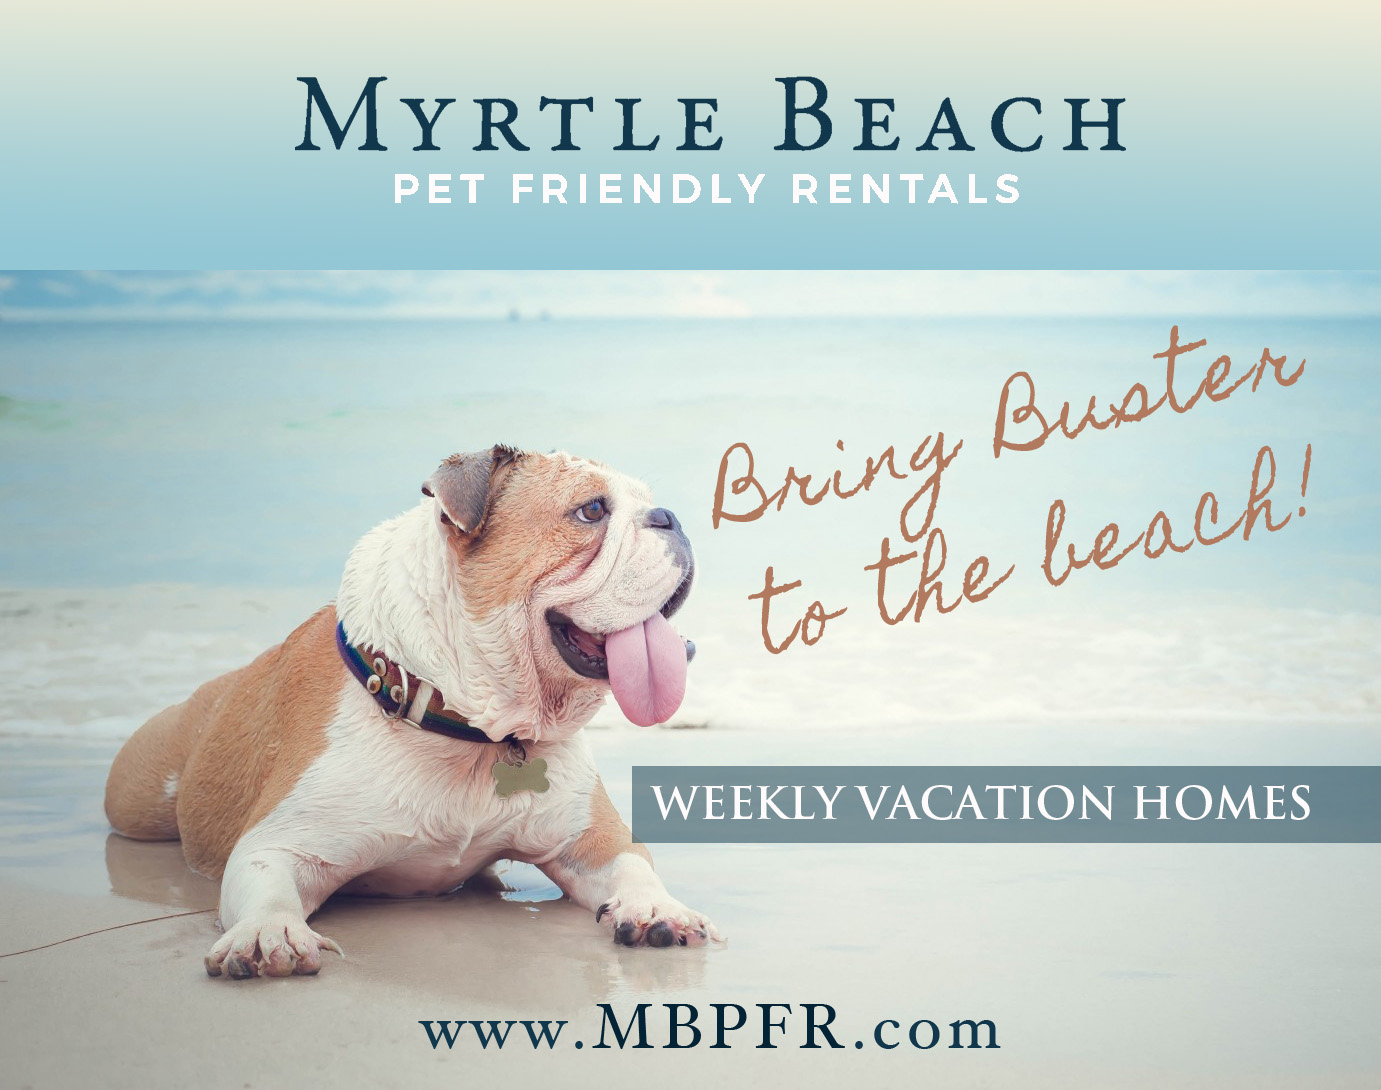 Myrtle Beach Pet Friendly Rentals